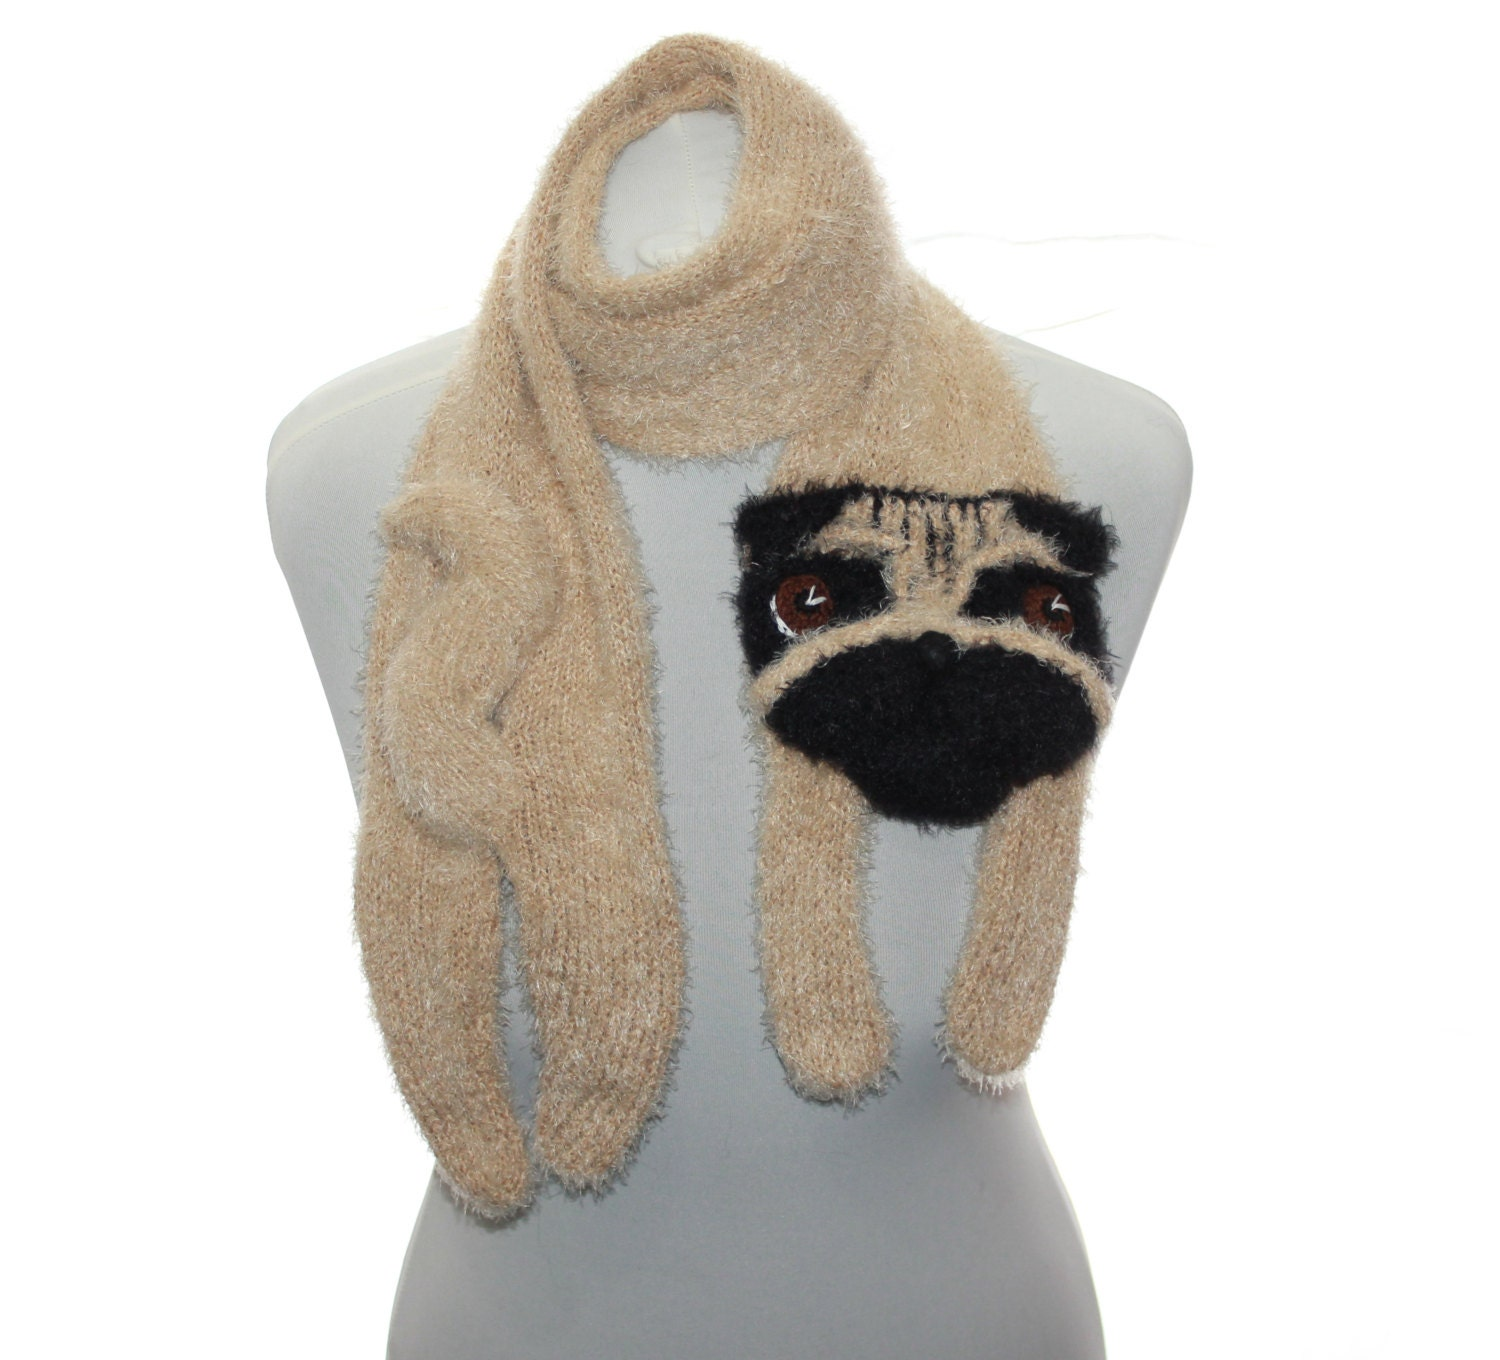 Knitted Pug Pattern : Dog portrait / Knitted Pug scarf / Fuzzy Soft Scarf / dog